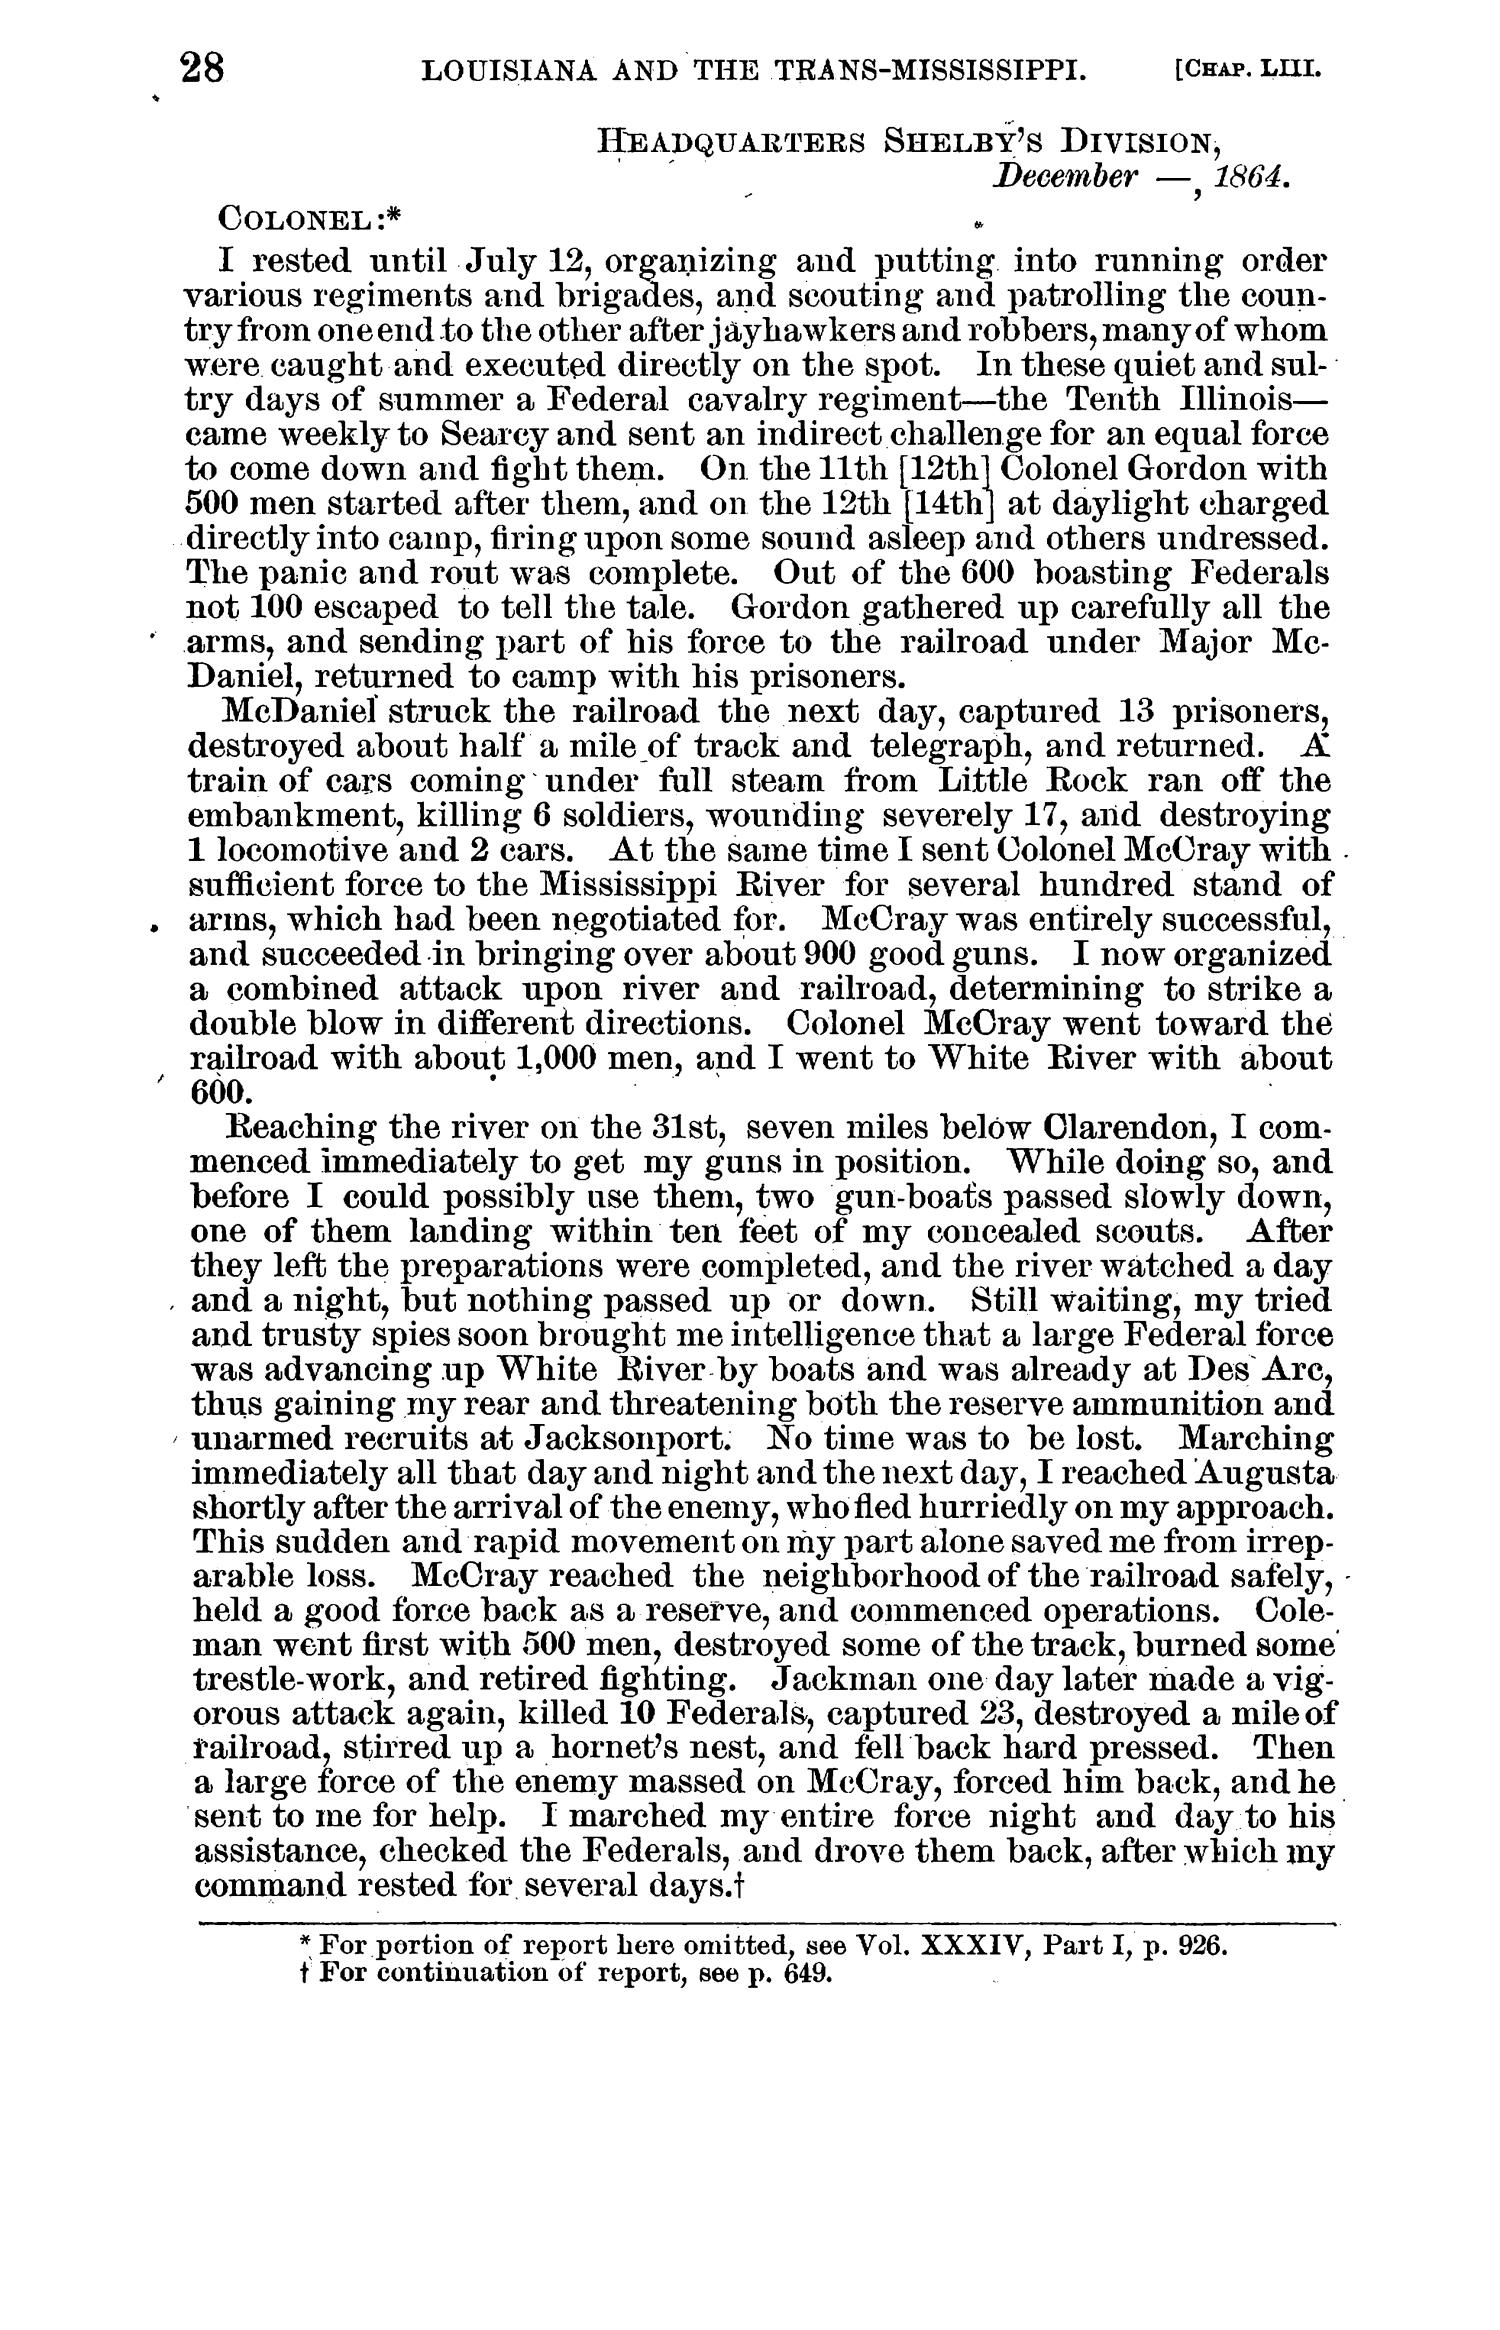 The War of the Rebellion: A Compilation of the Official Records of the Union And Confederate Armies. Series 1, Volume 41, In Four Parts. Part 1, Reports.                                                                                                      28